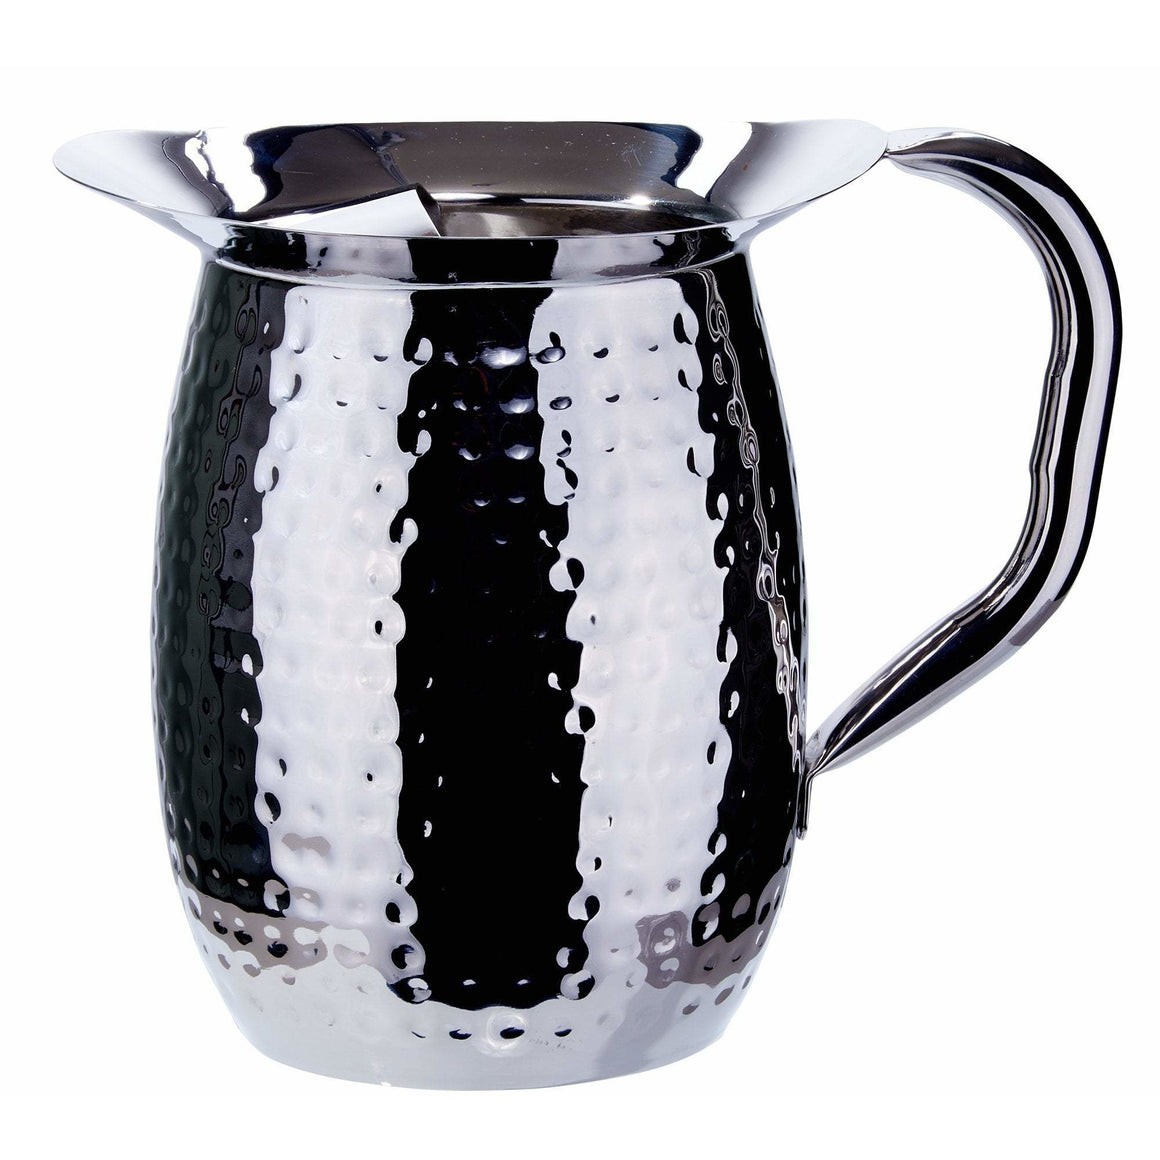 Winco - WPB-3H - 3 Quart Bell Pitcher, Hammered, Stainless Steel - Beverage Service